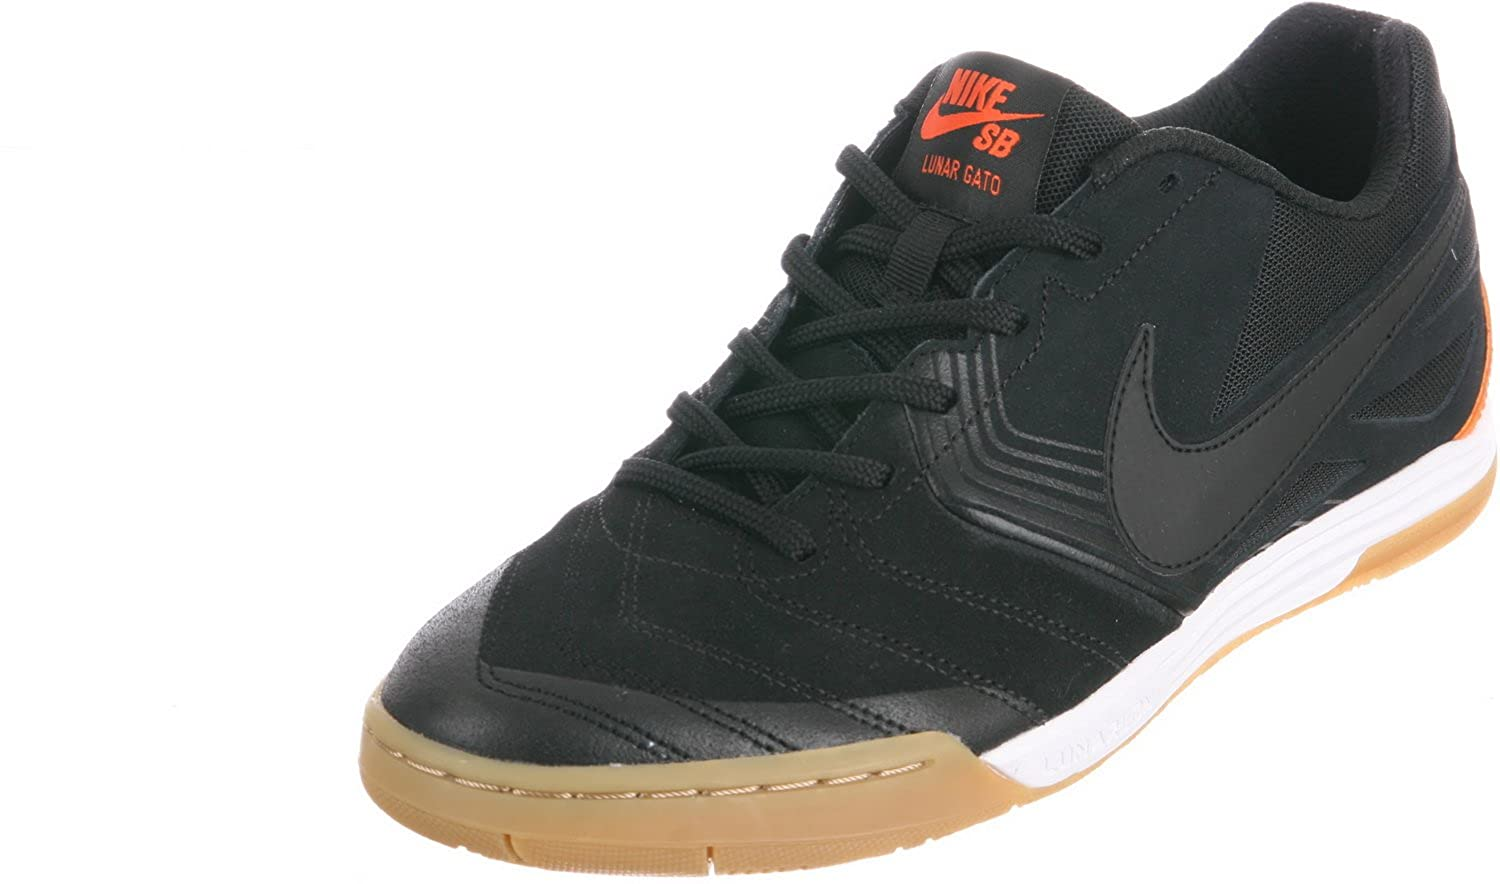 wholesale dealer b1c71 08ee3 Amazon.com   Nike SB Men s SB Lunar Gato WC Black Safety Orange Black 7 D -  Medium   Shoes